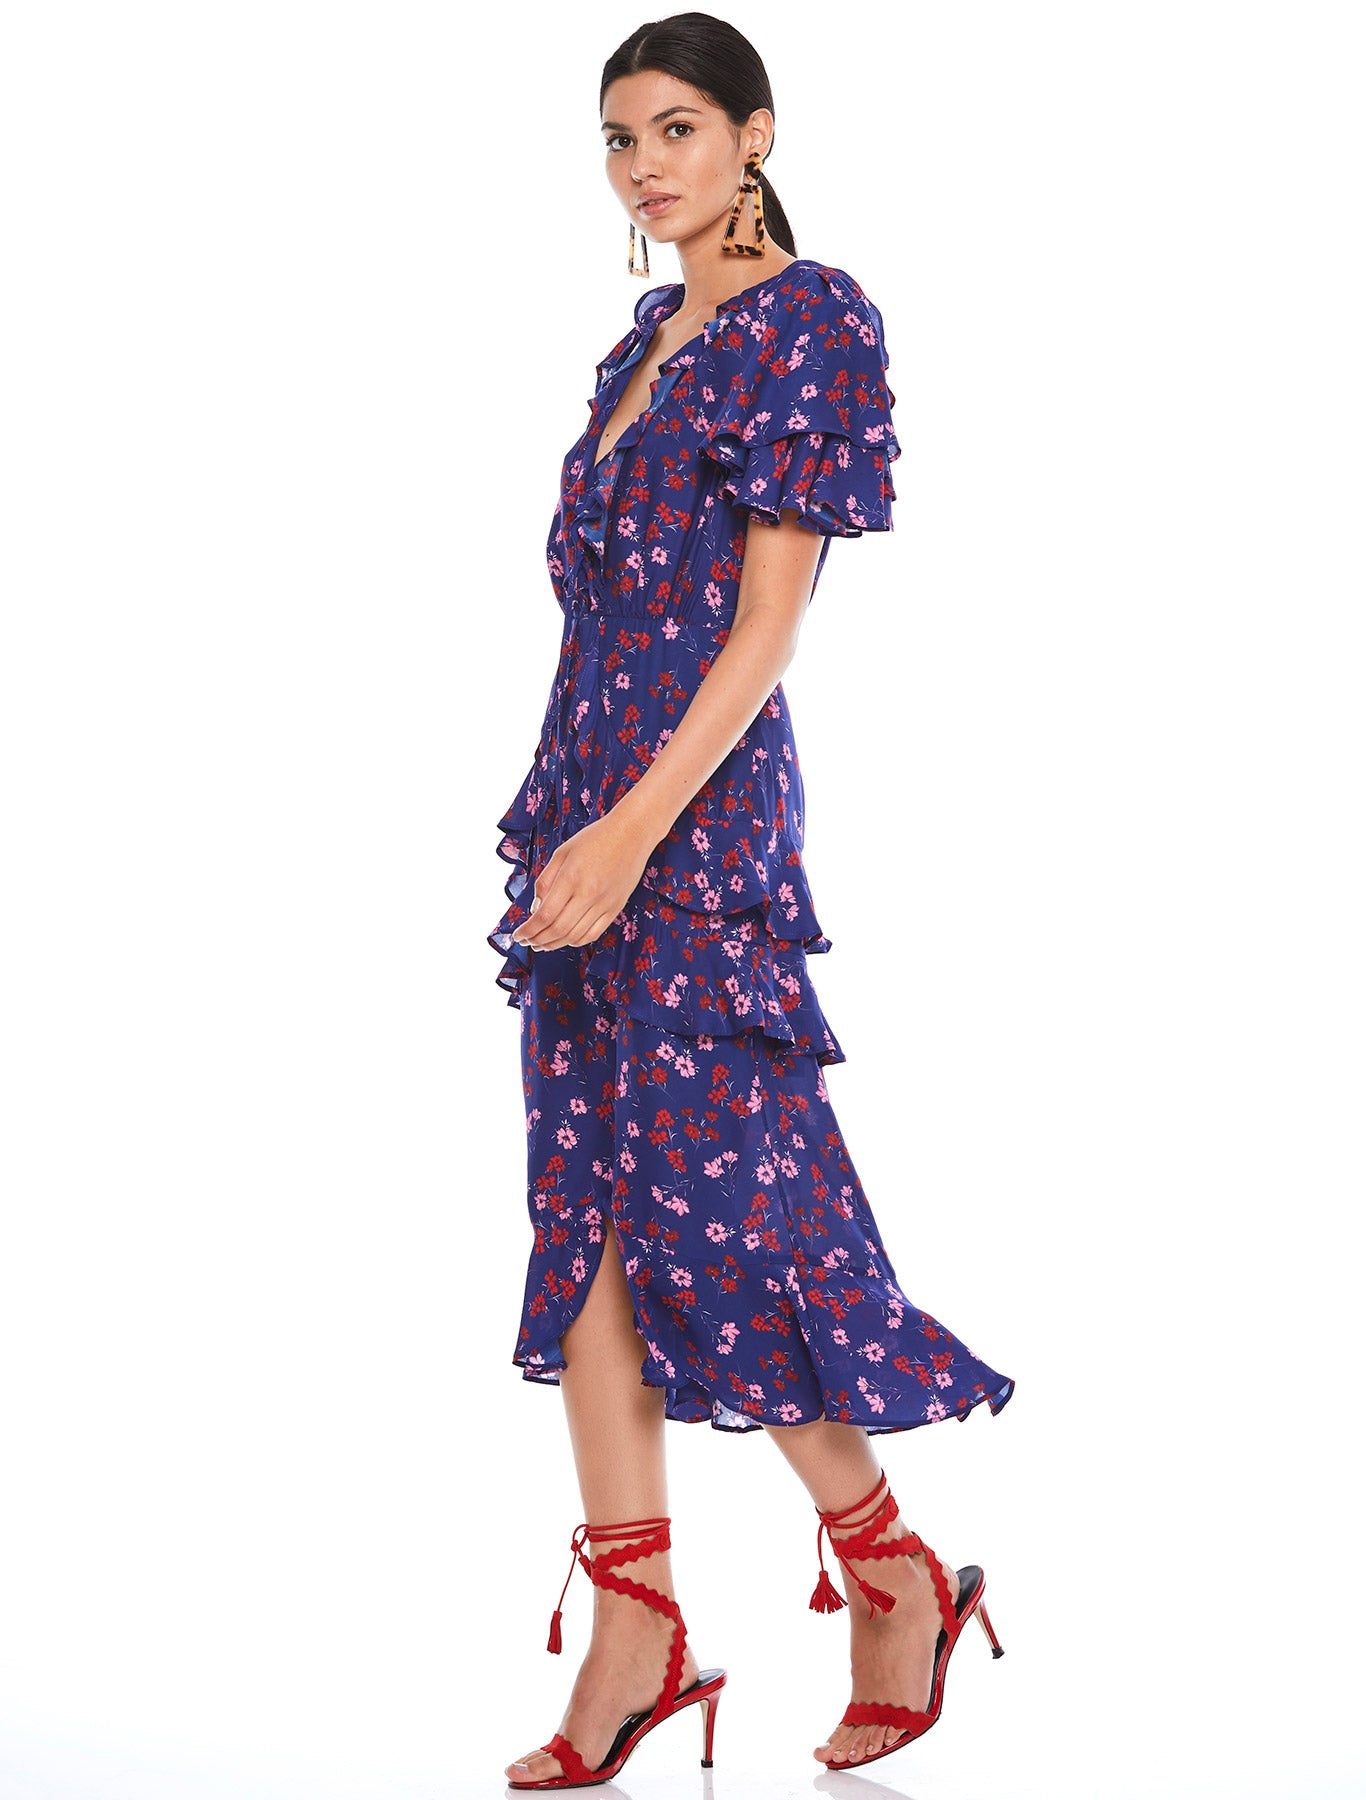 THE YEARNING RUFFLE MIDI DRESS